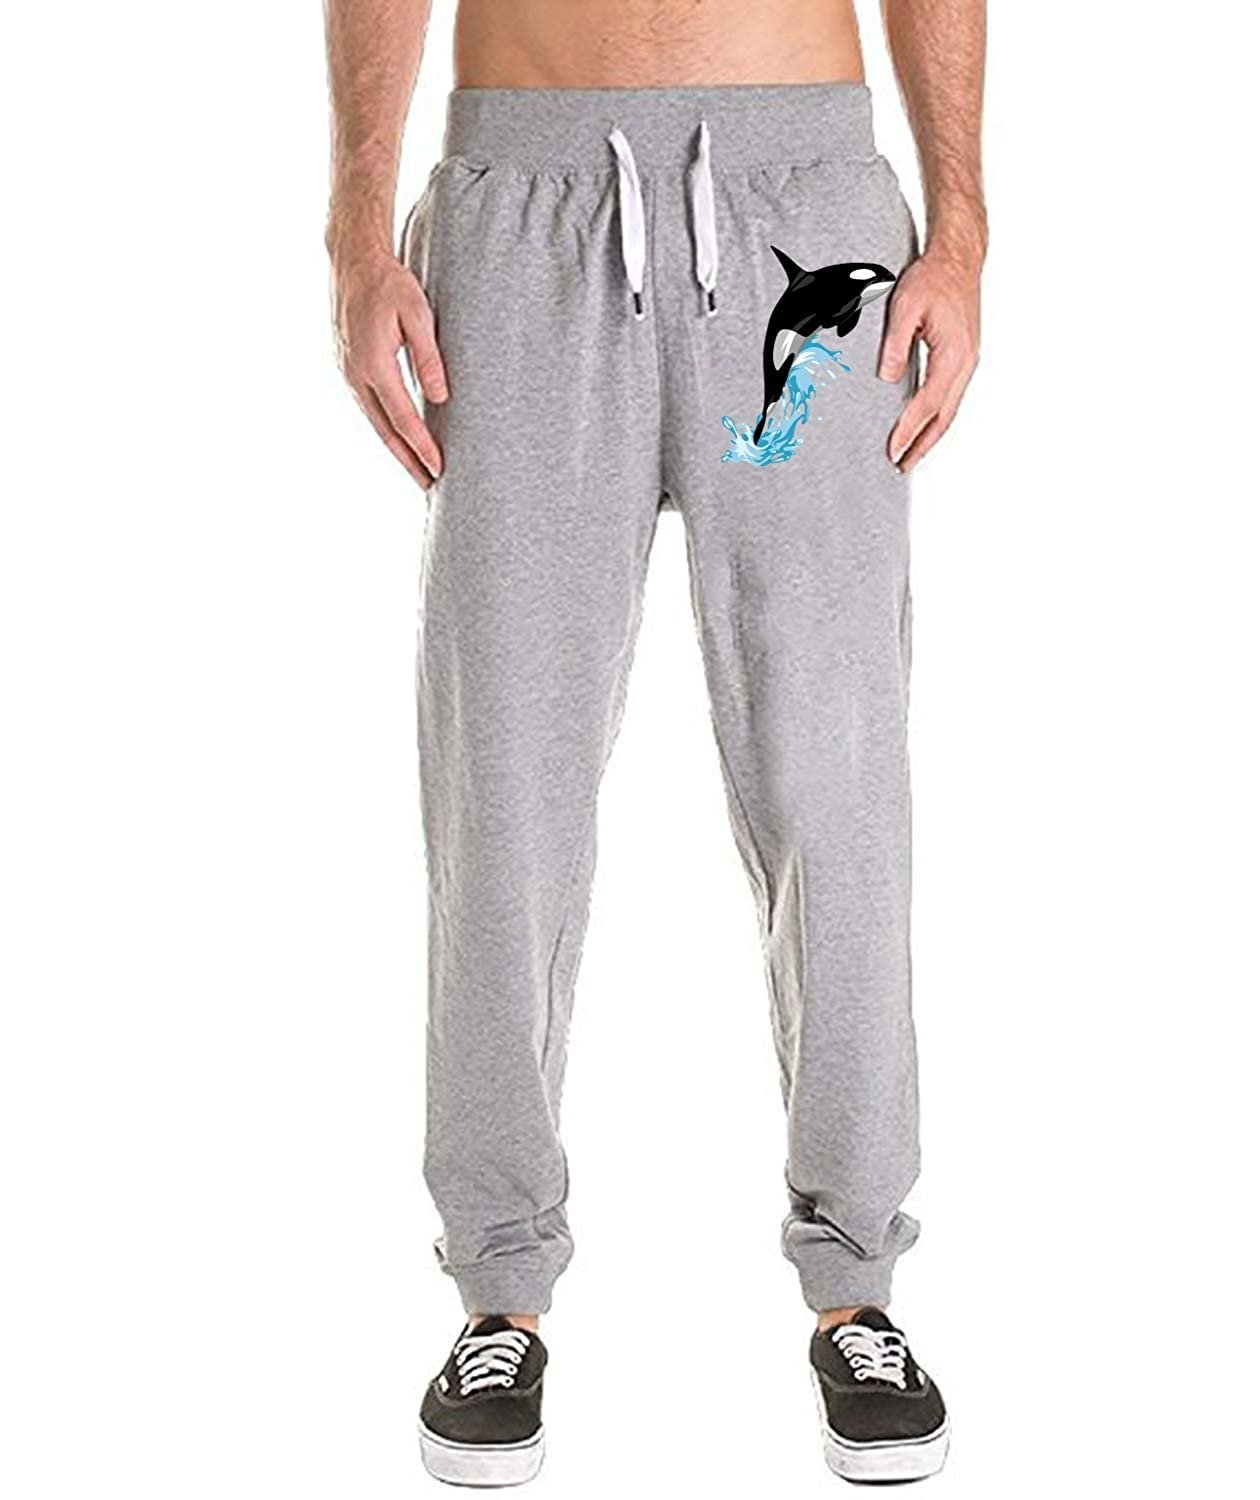 SUJQNGC Mens Ultra Soft Casual Pants Lounge Sleep Pants The Erth Without Rt is Just Eh Drawstring Pants